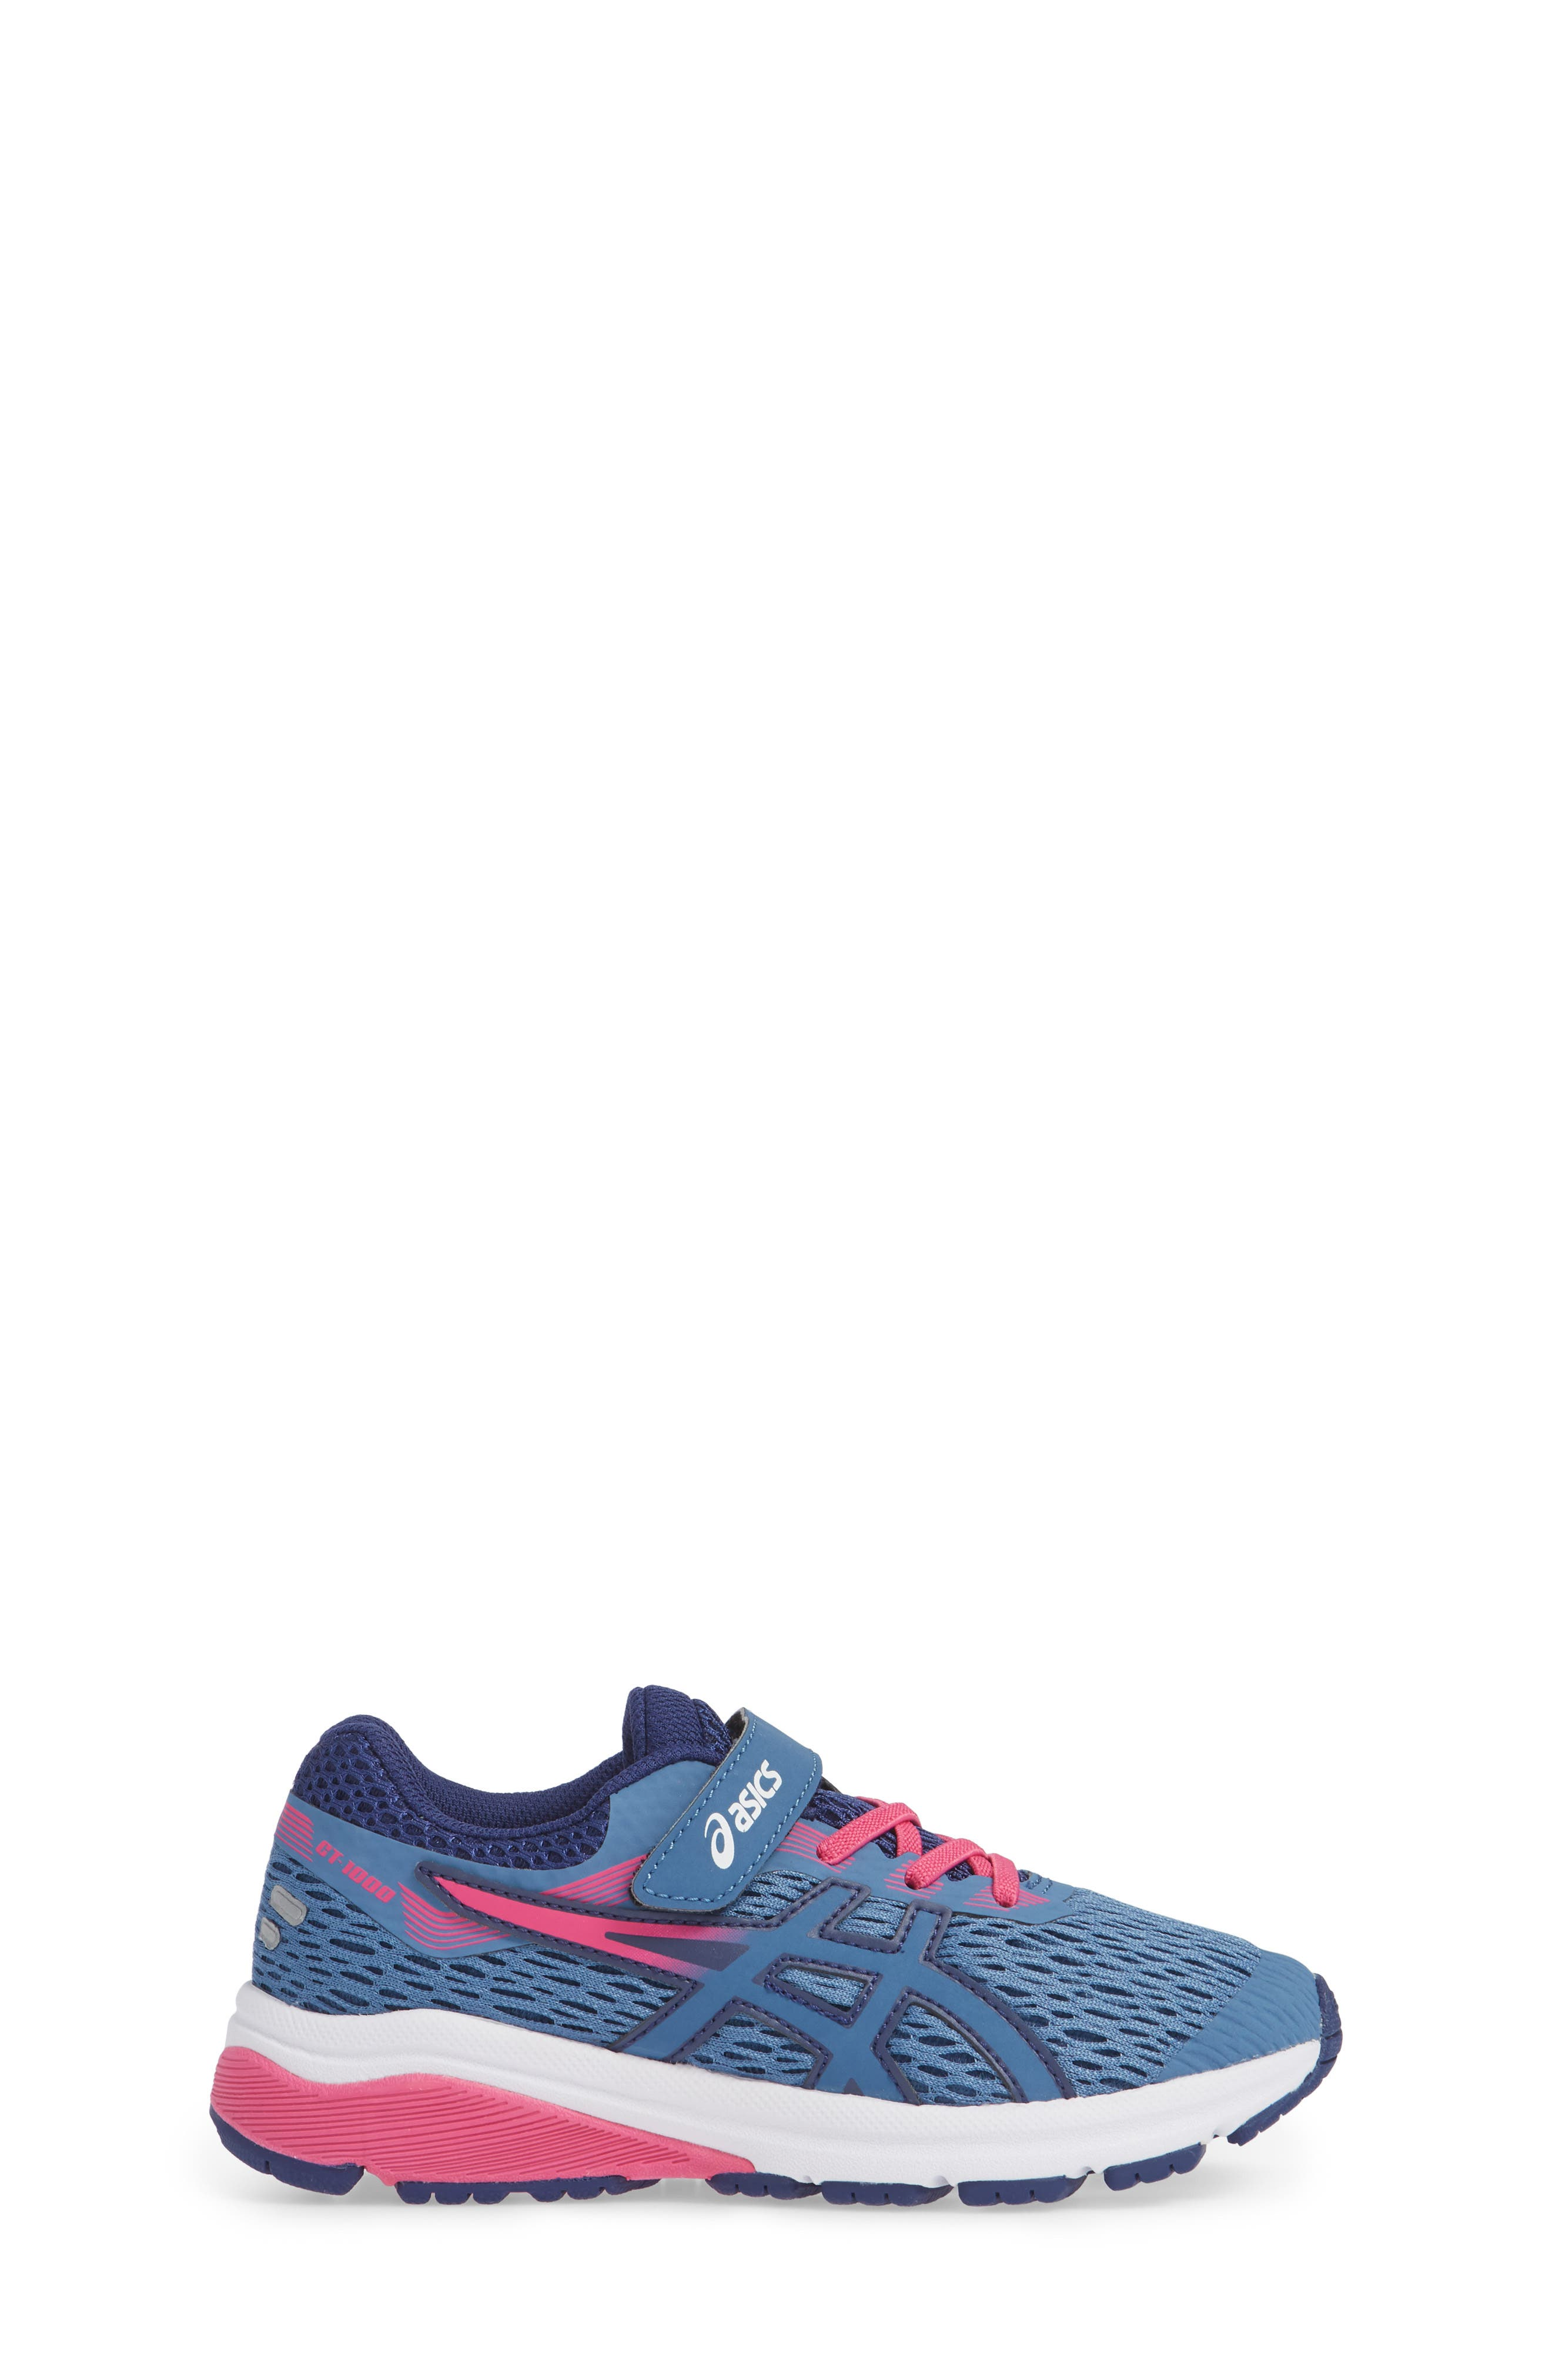 GT 1000 7 Running Shoe,                             Alternate thumbnail 3, color,                             AZURE/ FUCHSIA PURPLE